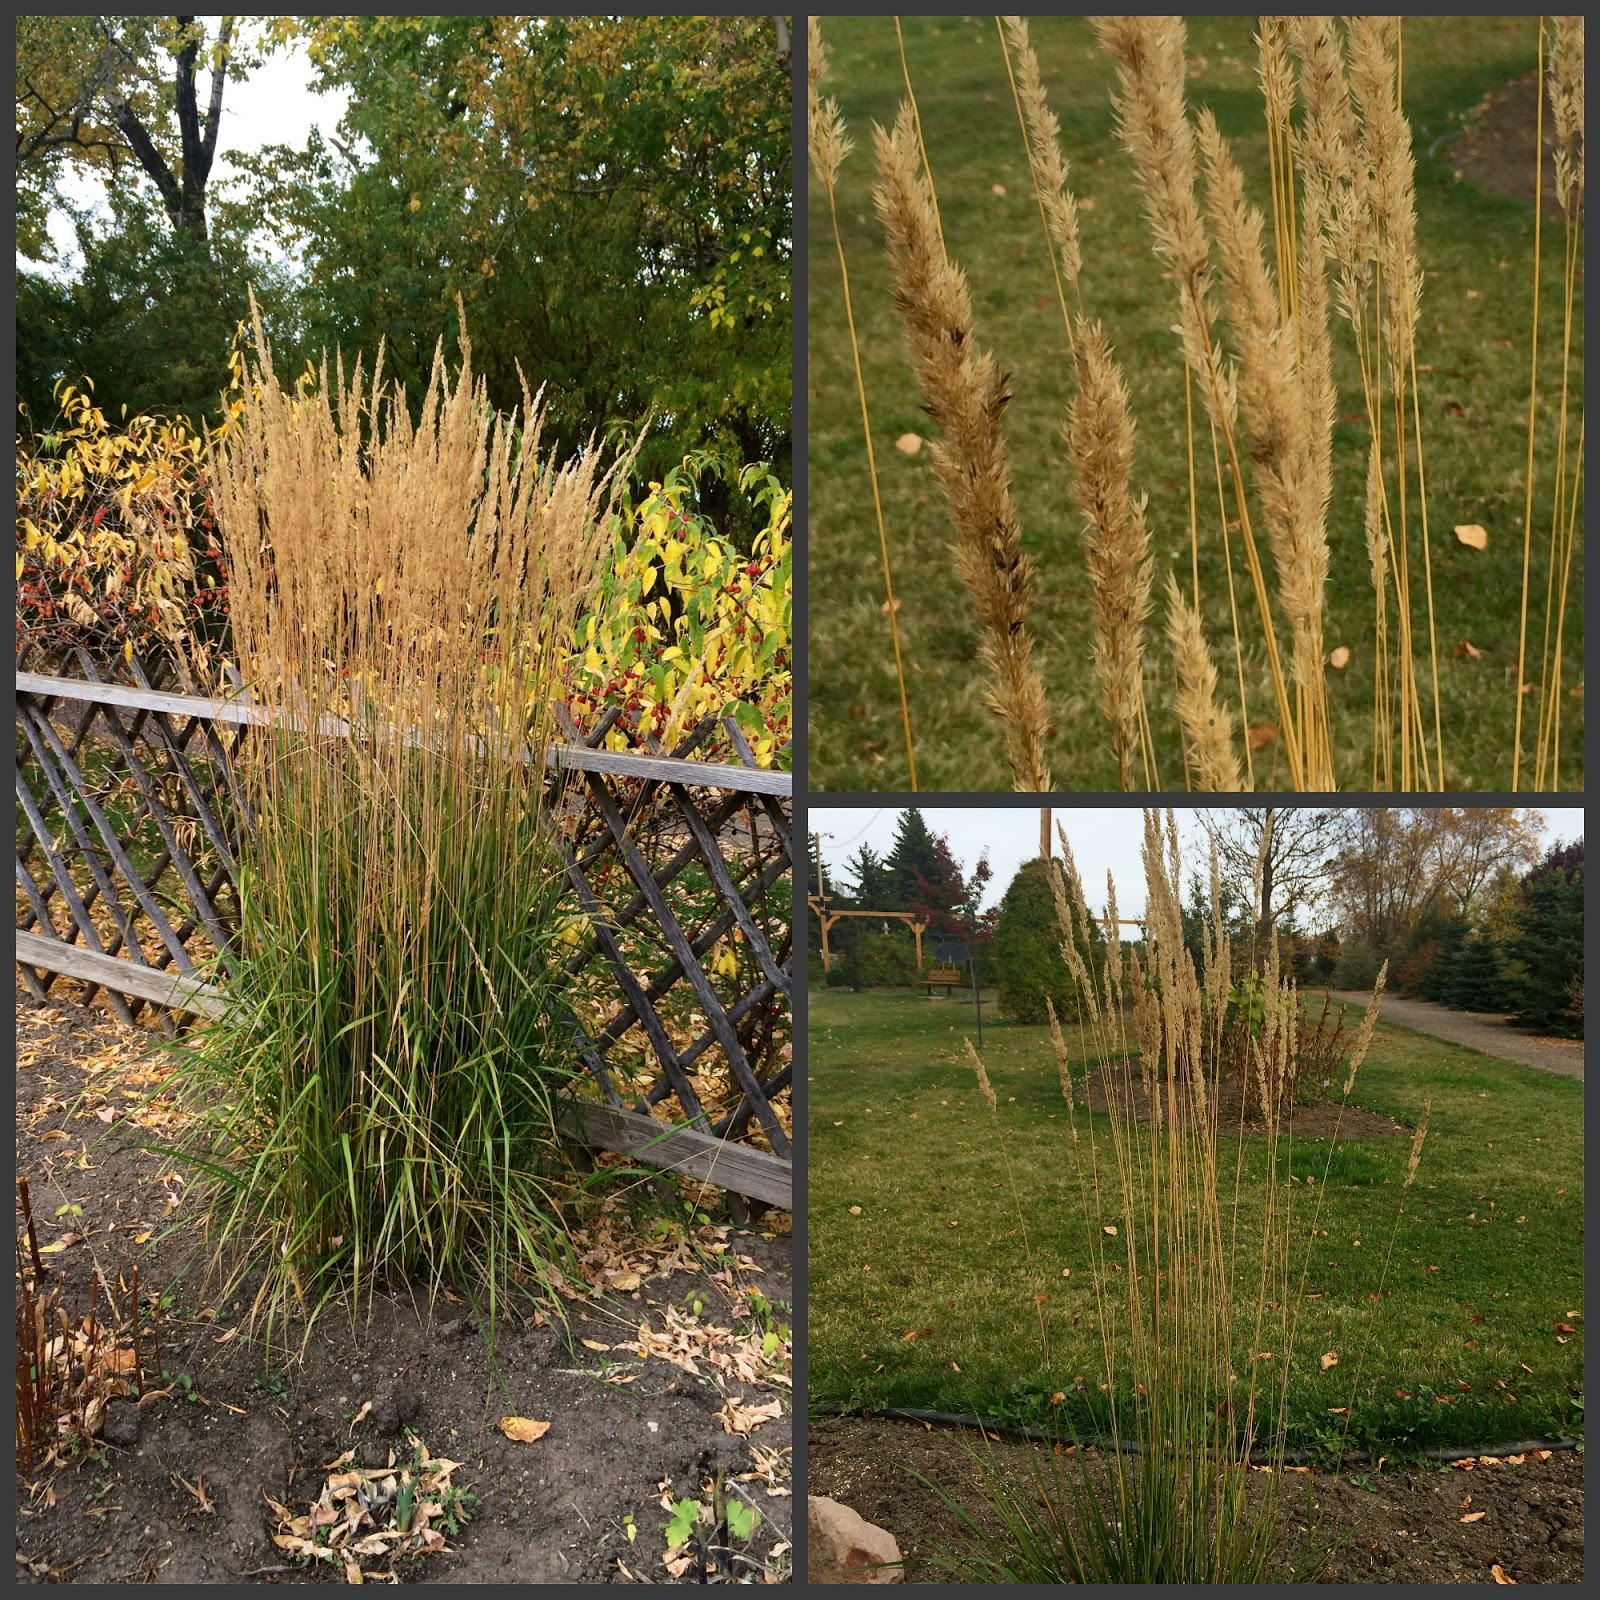 Genial This Grass Is So Popular, Itu0027s Sold Out Everywhere!!! Spotlight On Karl  Foerster Ornamental Grass